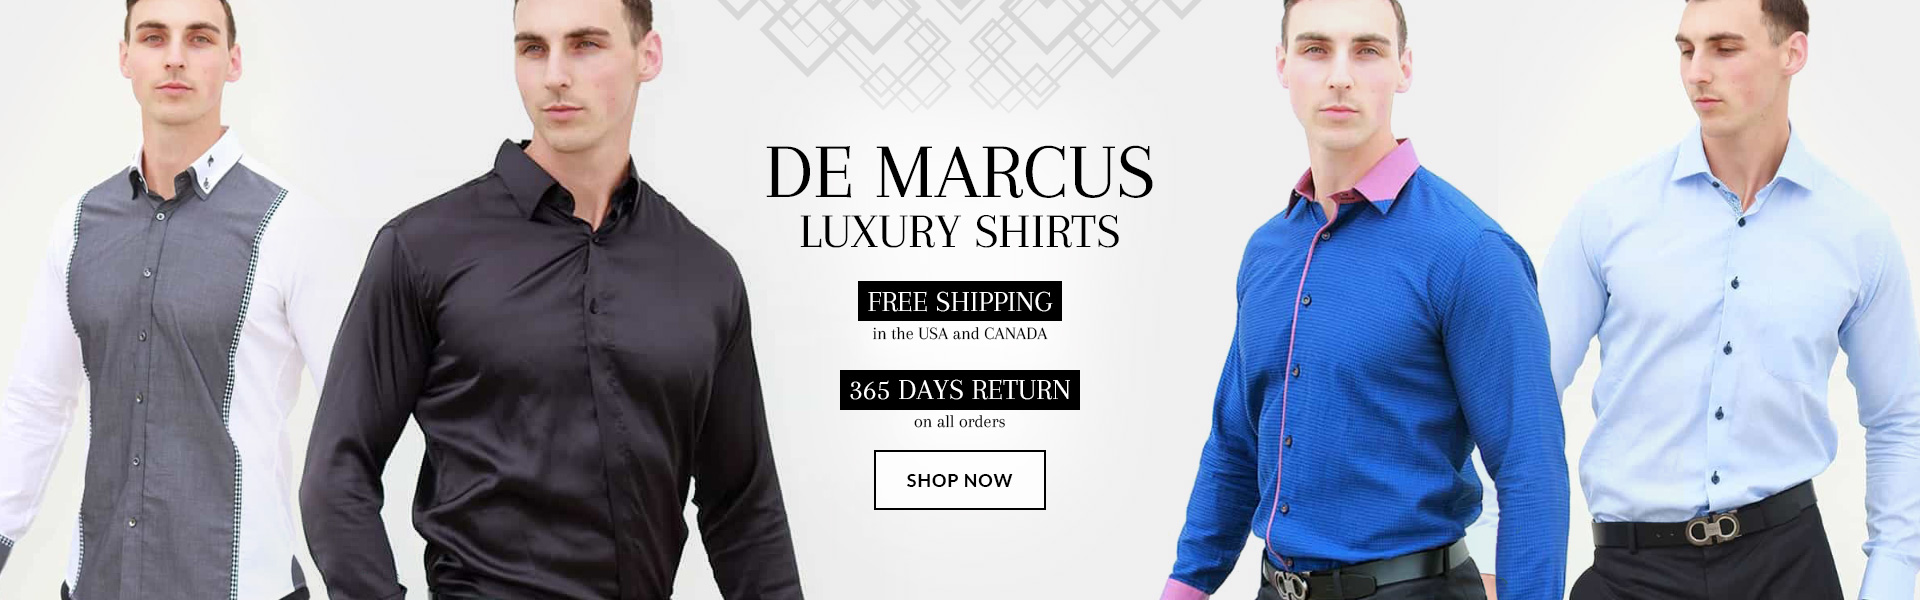 De Marcus Luxury Shirts